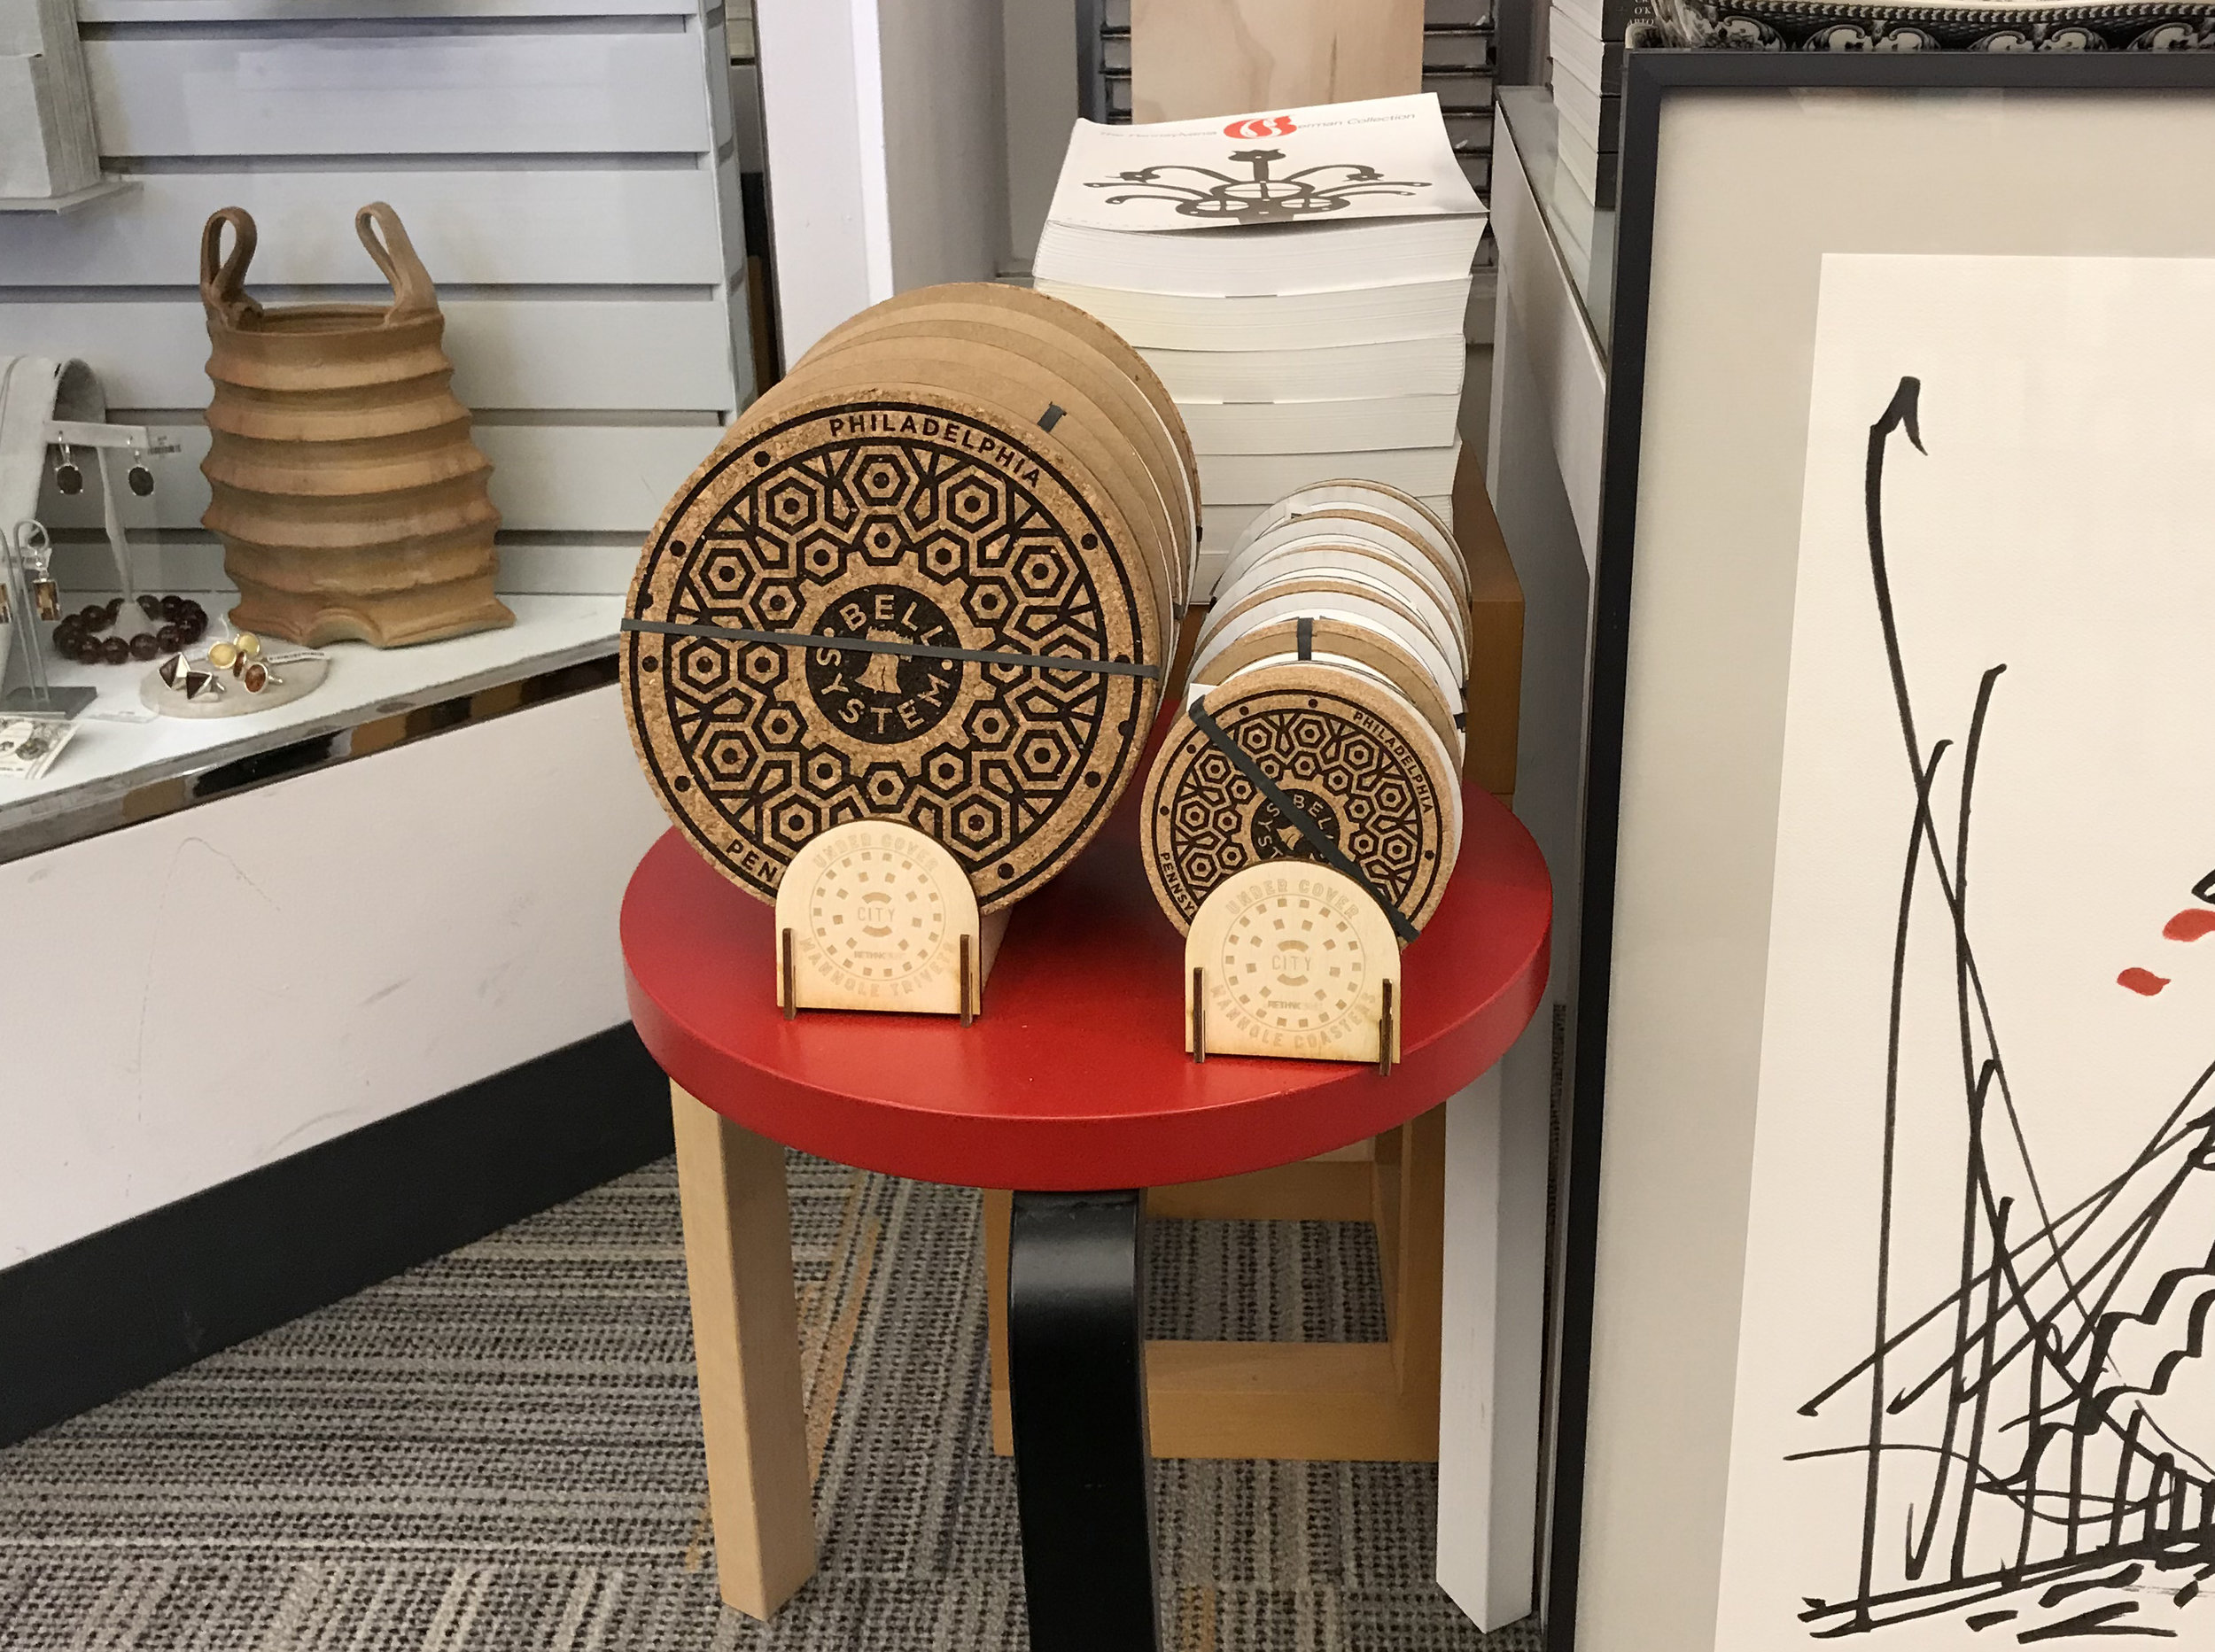 The philadelphia phever coaster series and trivets are now available at the philadelphia museum of art. - All purchases at the PMA Store benefit the museum's operations and extraordinary cultural collection, so show some brotherly love and pick up a set.